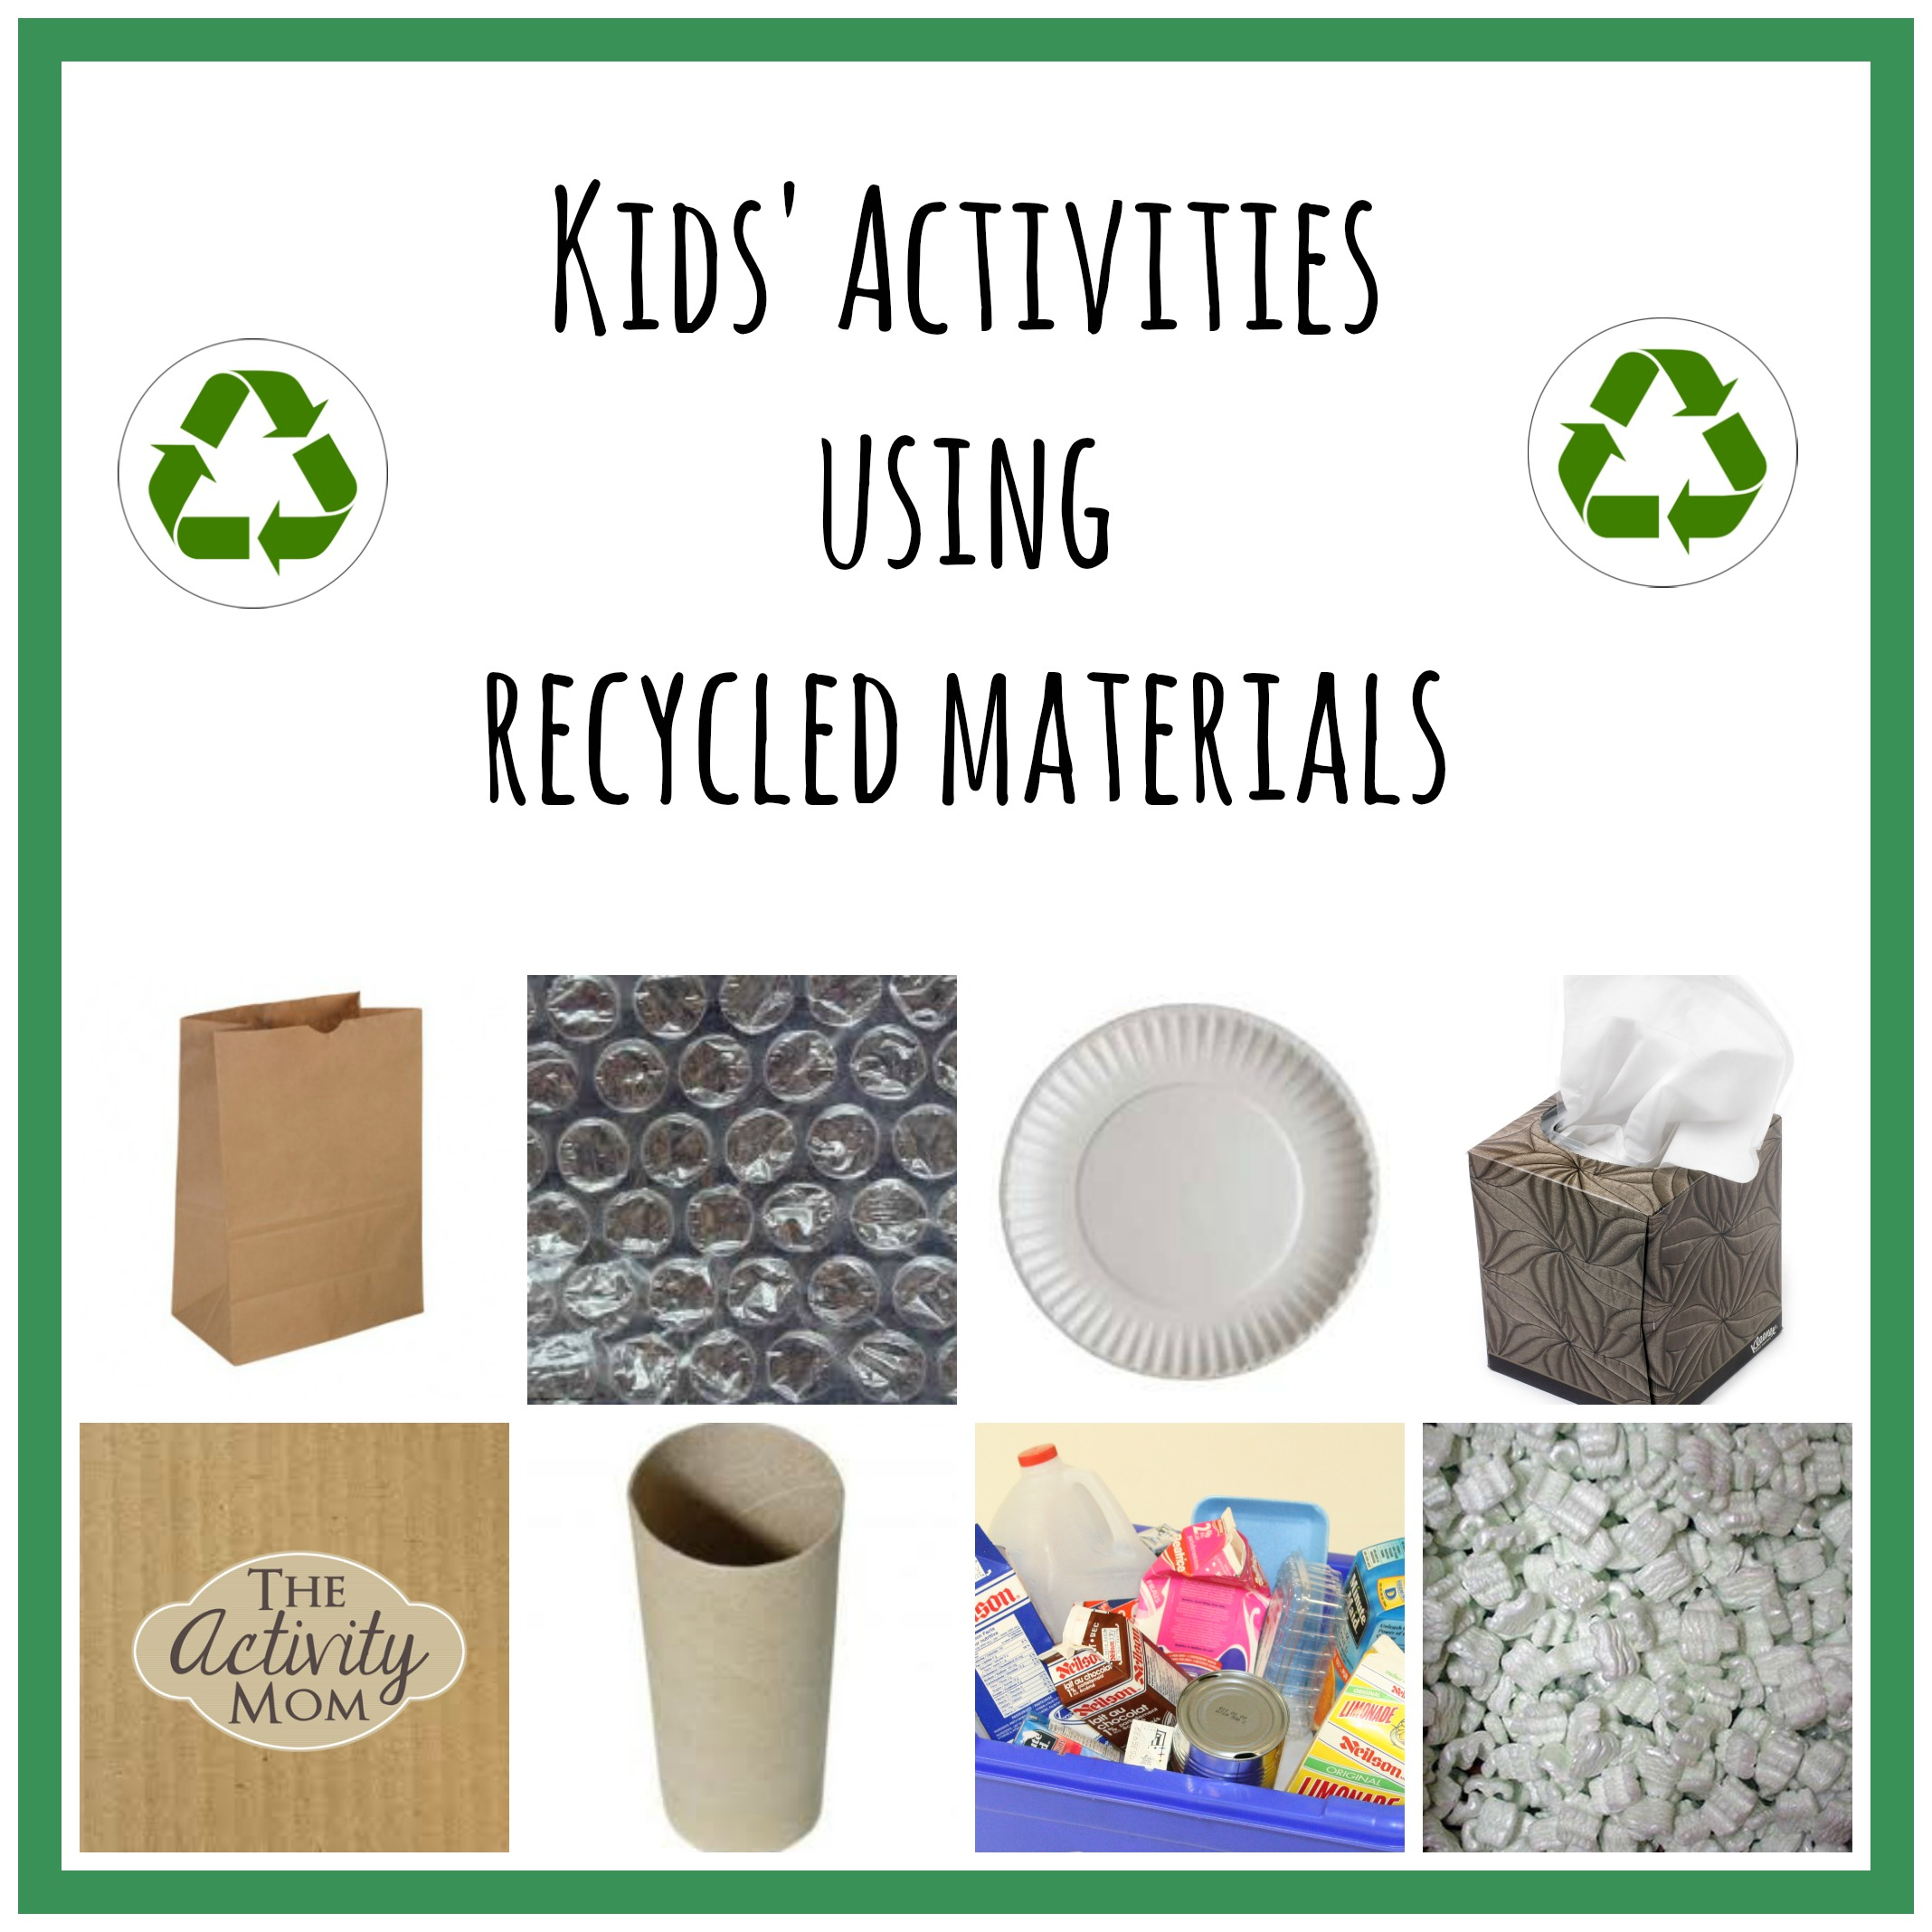 Kids' Activities using Recycled Materials